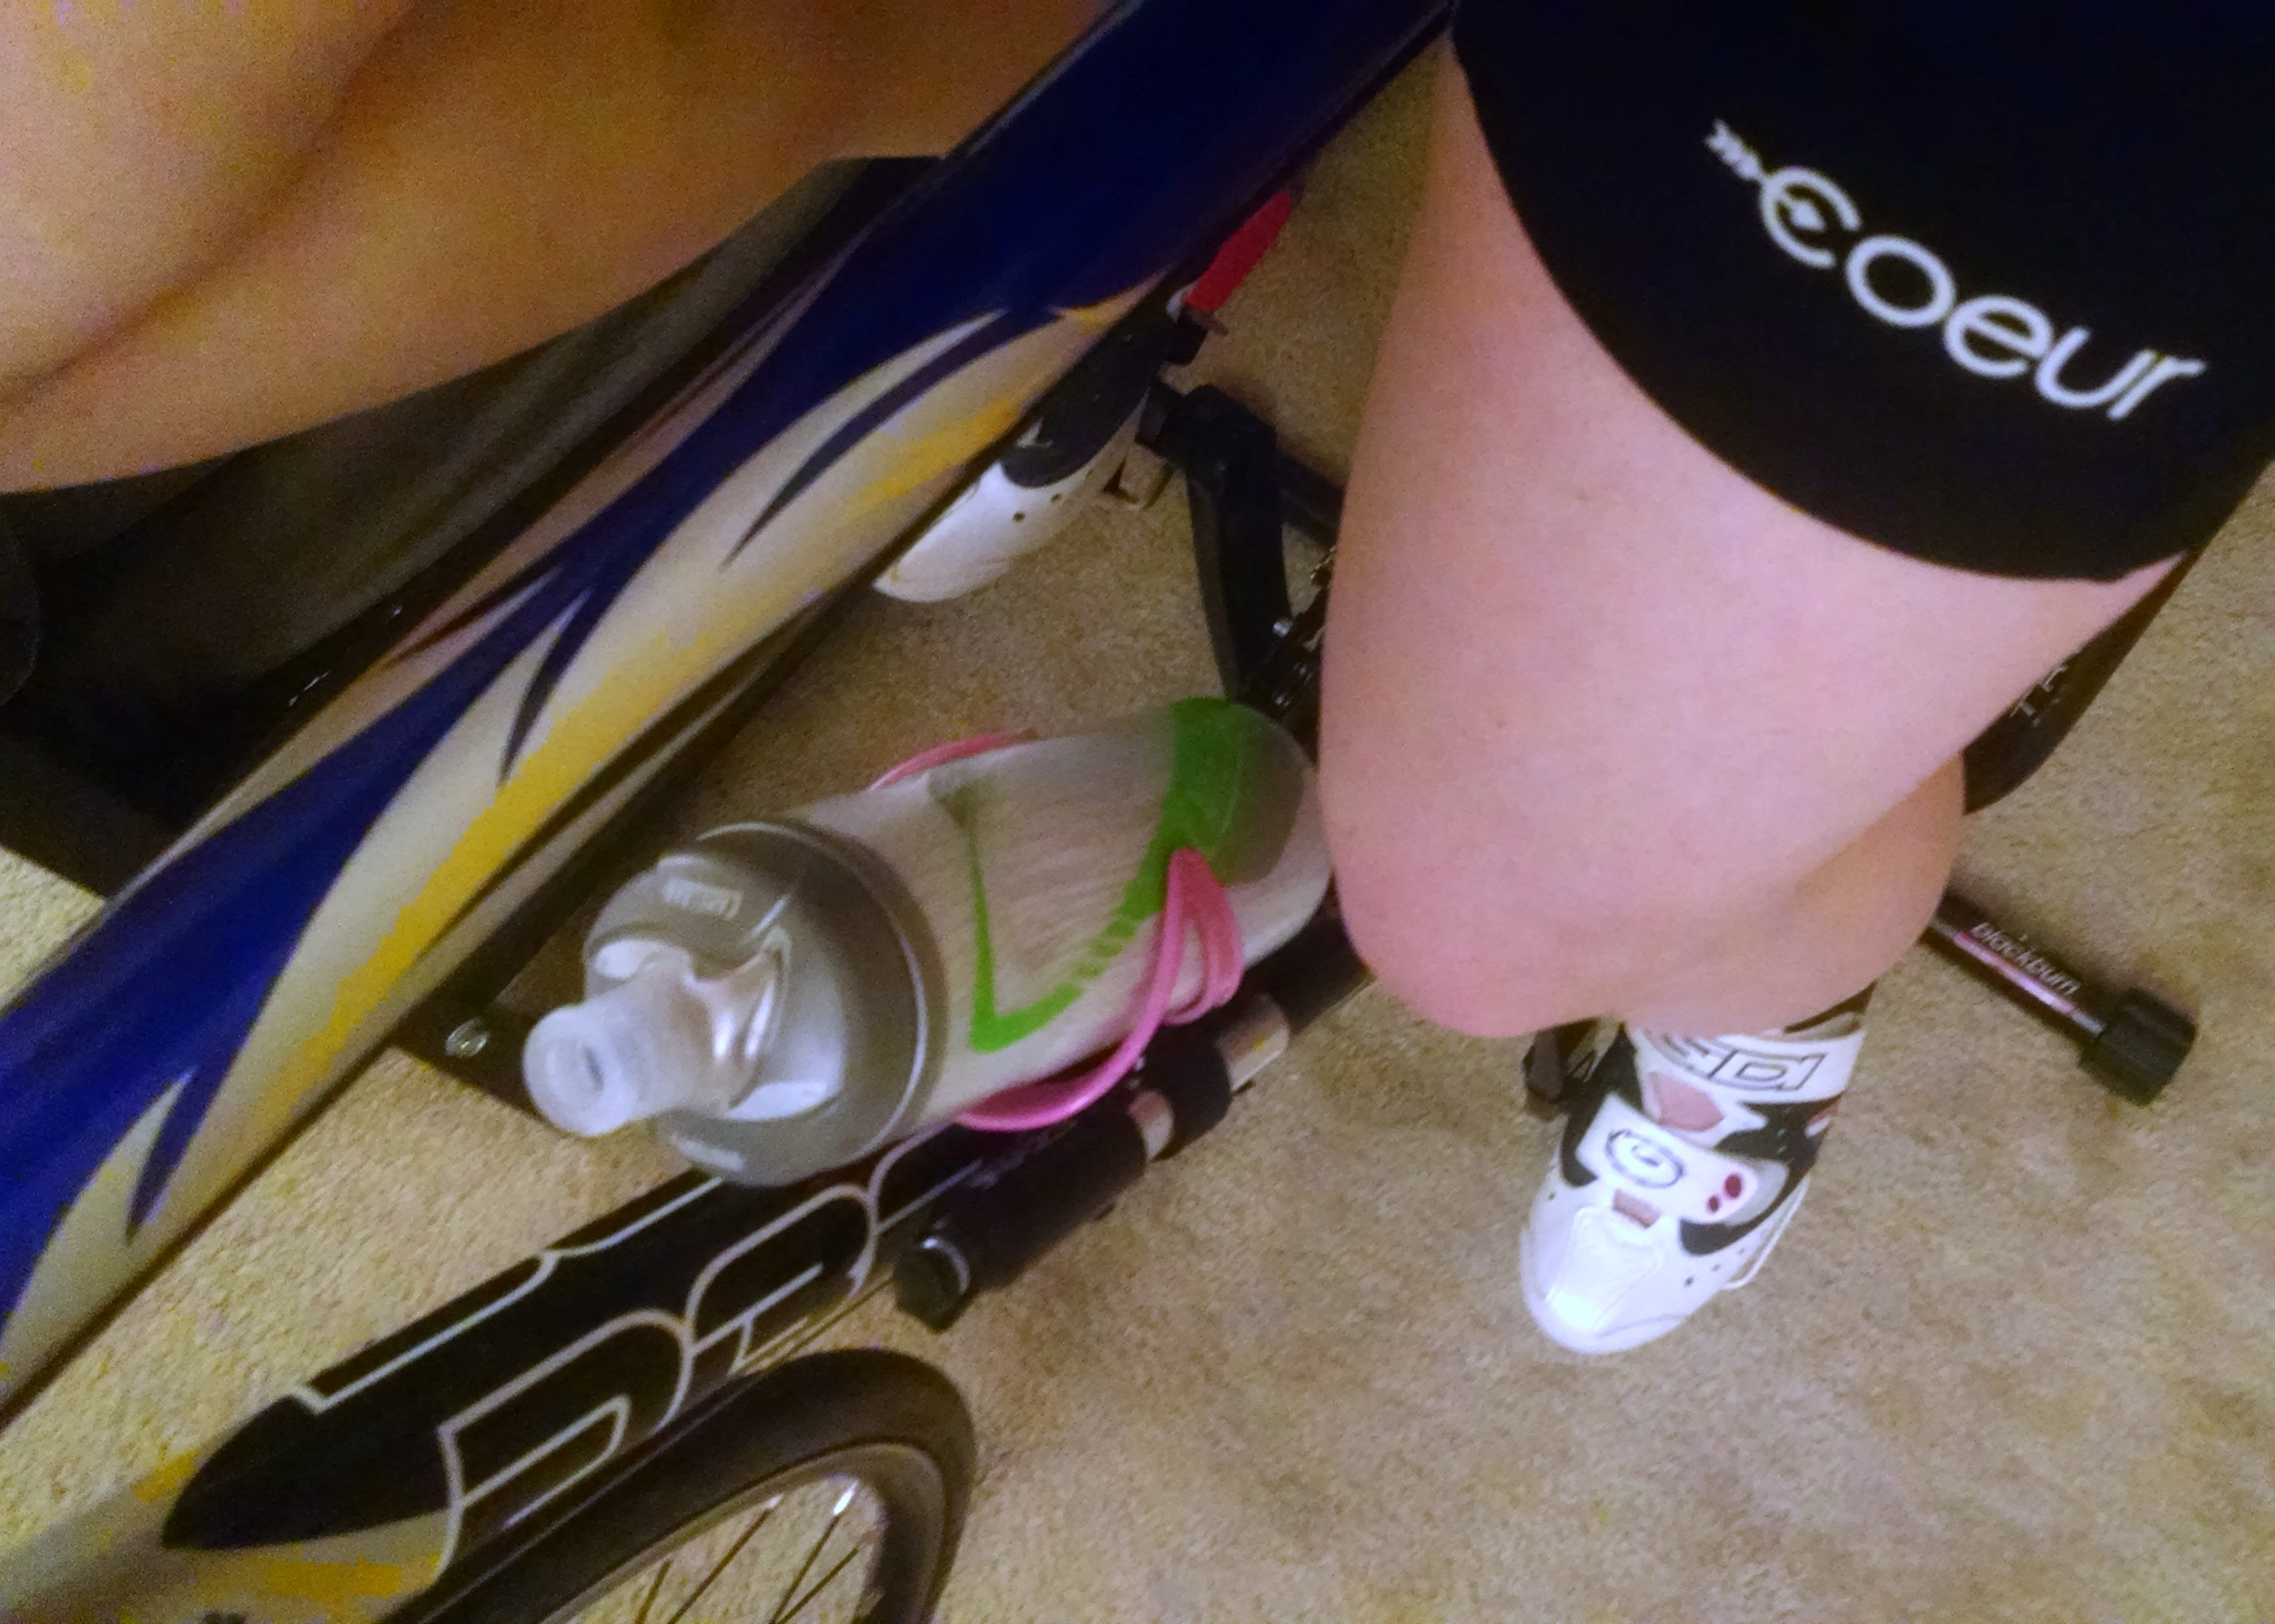 Very much digging my new coeur Sports 8 inch little black tri shorts.  Such a thin pad, but so comfy!